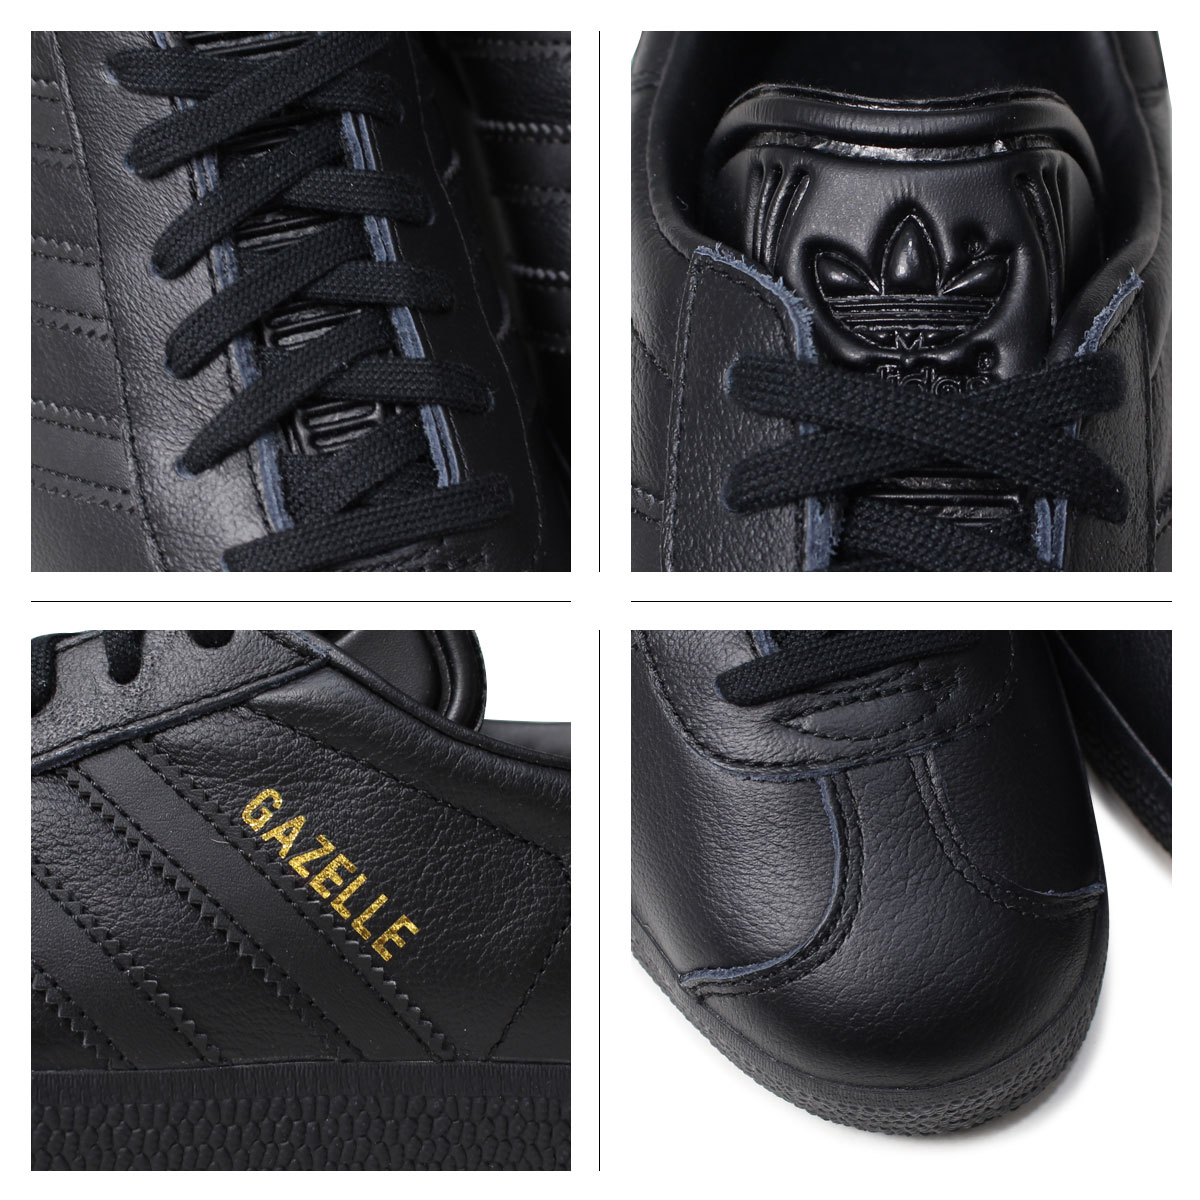 3685eda1a27 Adidas gazelle adidas sneakers men gap Dis Originals GAZELLE BB5497 shoes  black originals  12 22 Shinnyu load